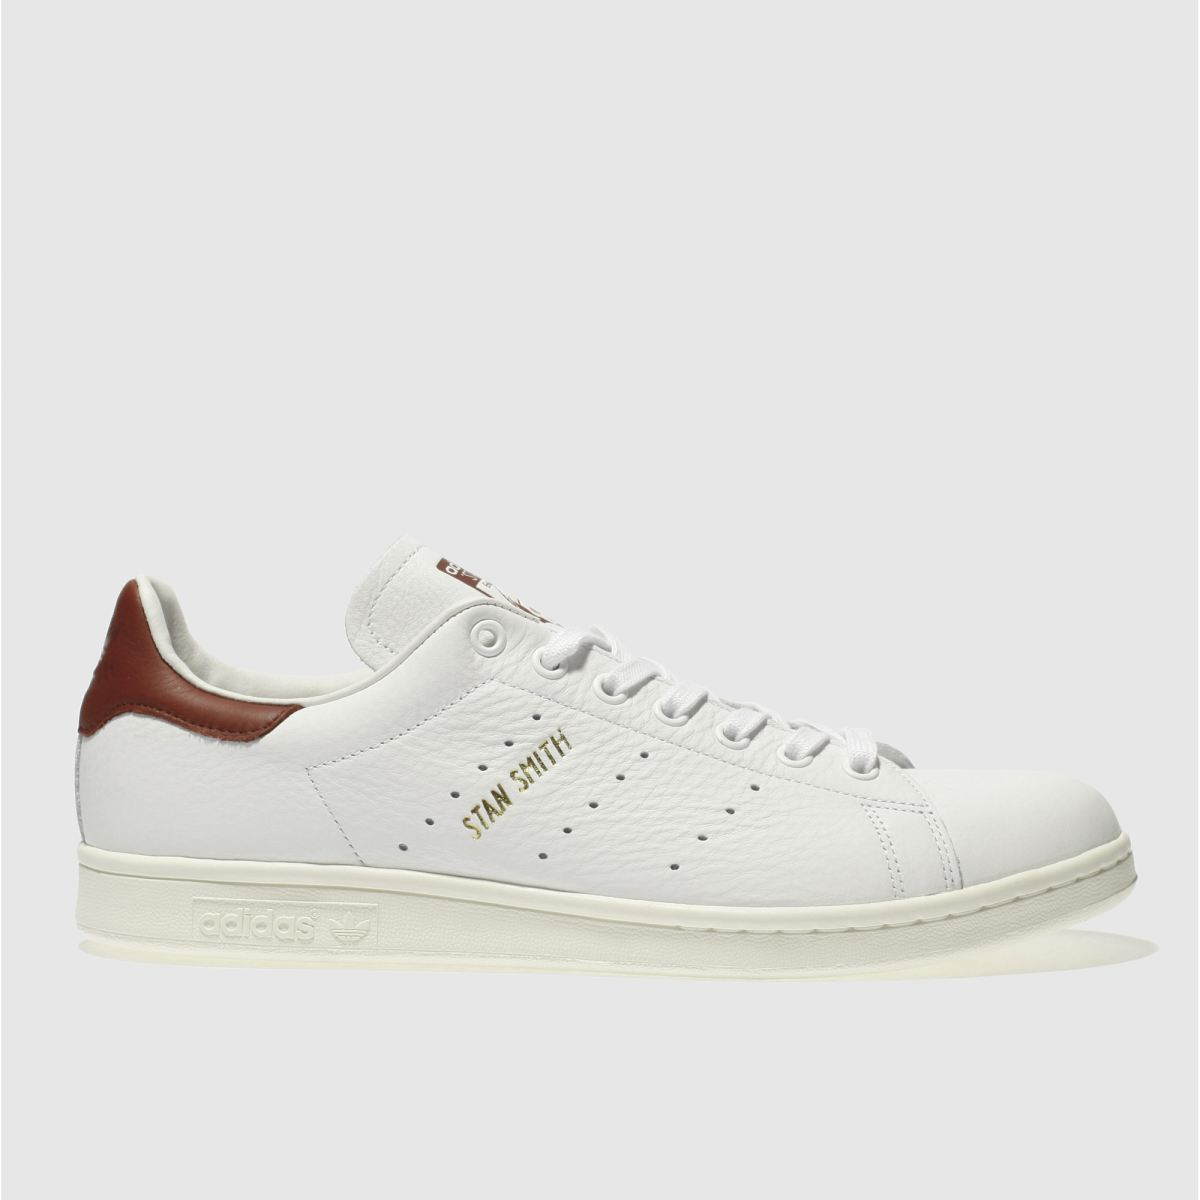 adidas white & burgundy stan smith trainers